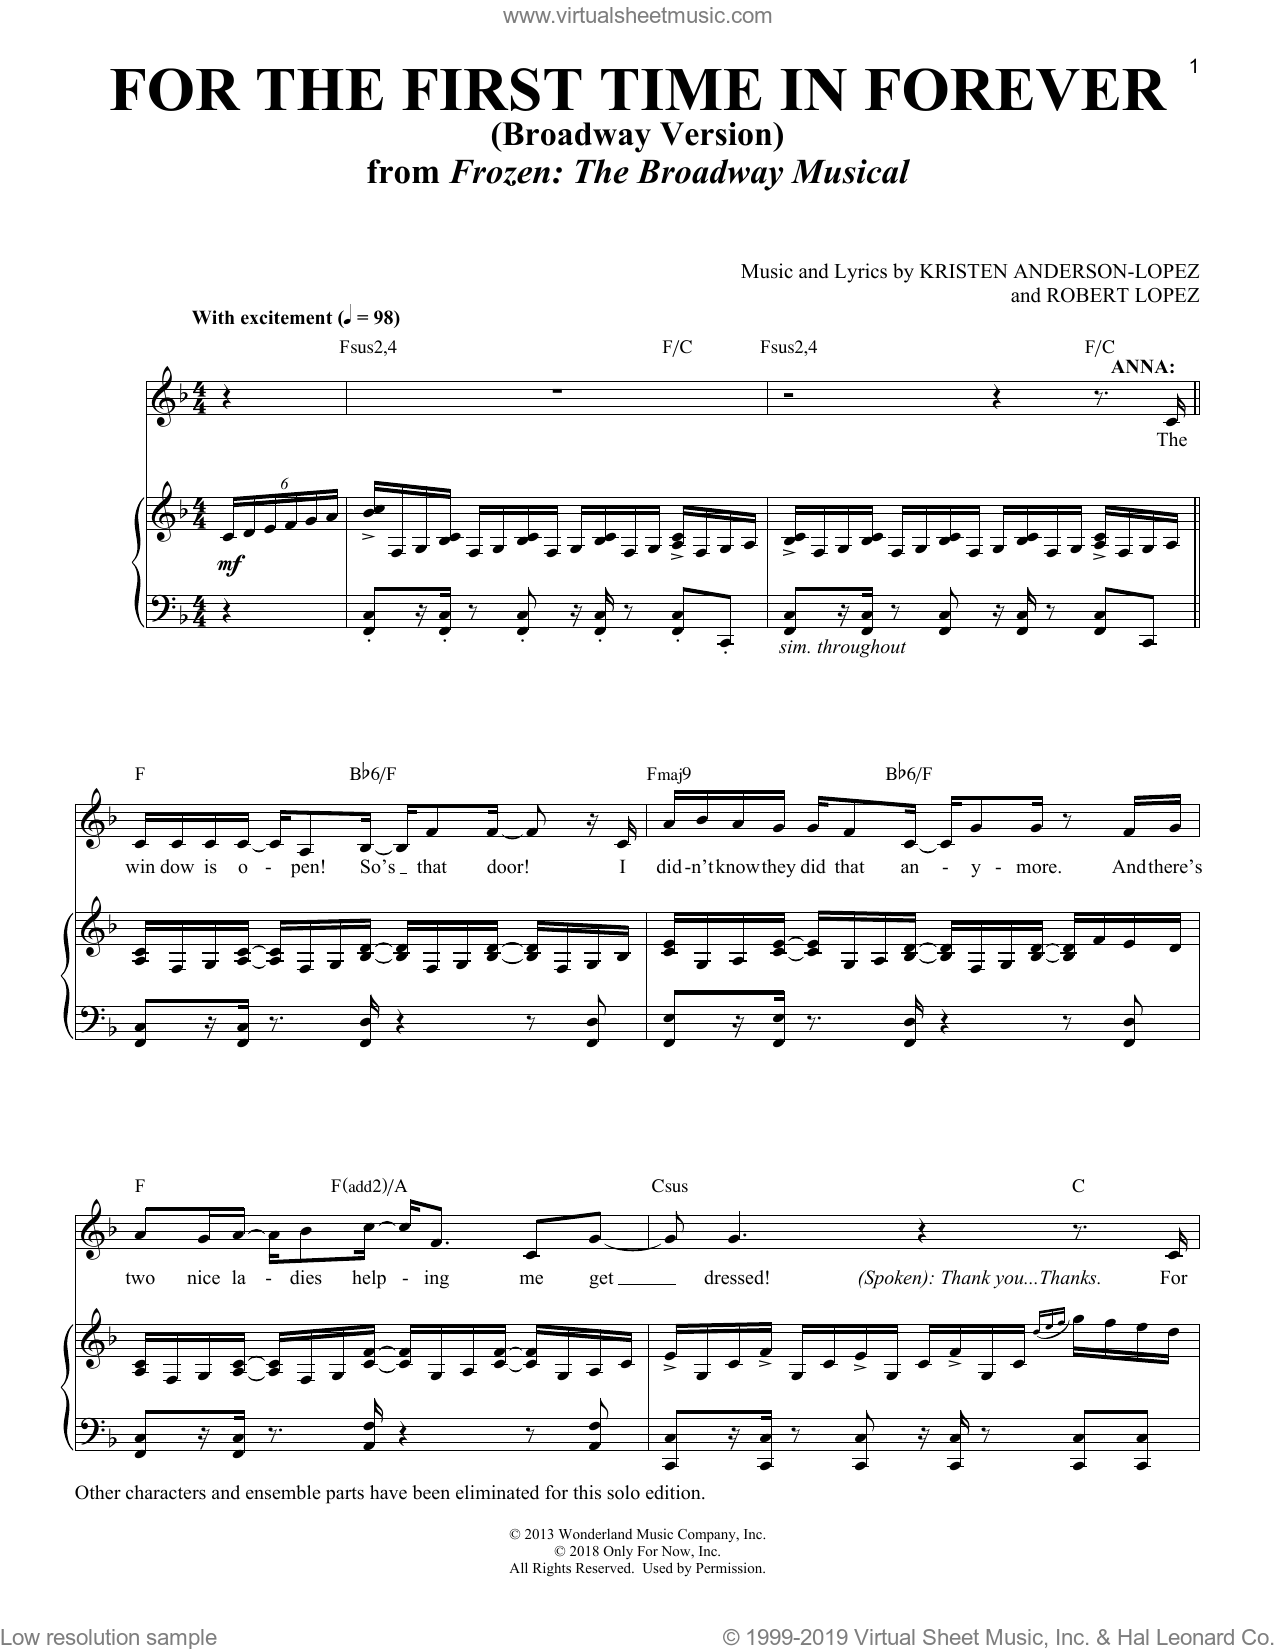 For The First Time In Forever [Solo version] (from Frozen: The Broadway Musical) sheet music for voice and piano by Robert Lopez, Richard Walters, Kristen Anderson-Lopez and Kristen Anderson-Lopez & Robert Lopez, intermediate skill level